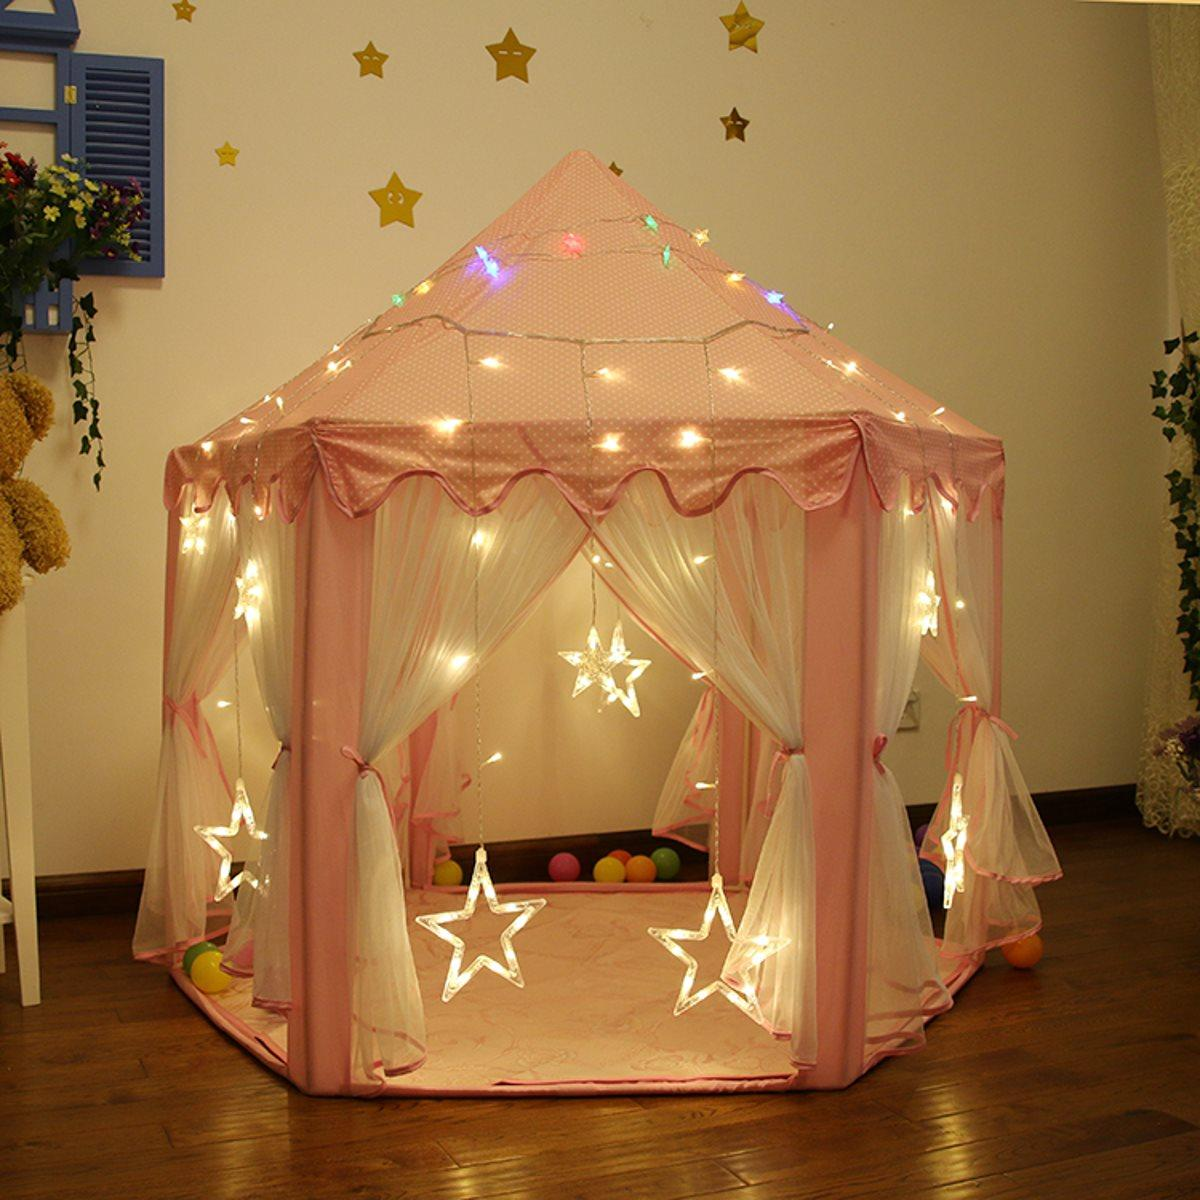 Good Indoor Tent Part - 9: Portable Princess Castle Play Tent With Led Light Children Activity Fairy  House Kids Funny Indoor Outdoor Playhouse Playing Toy Play Tunnel Tent Big  Play ...